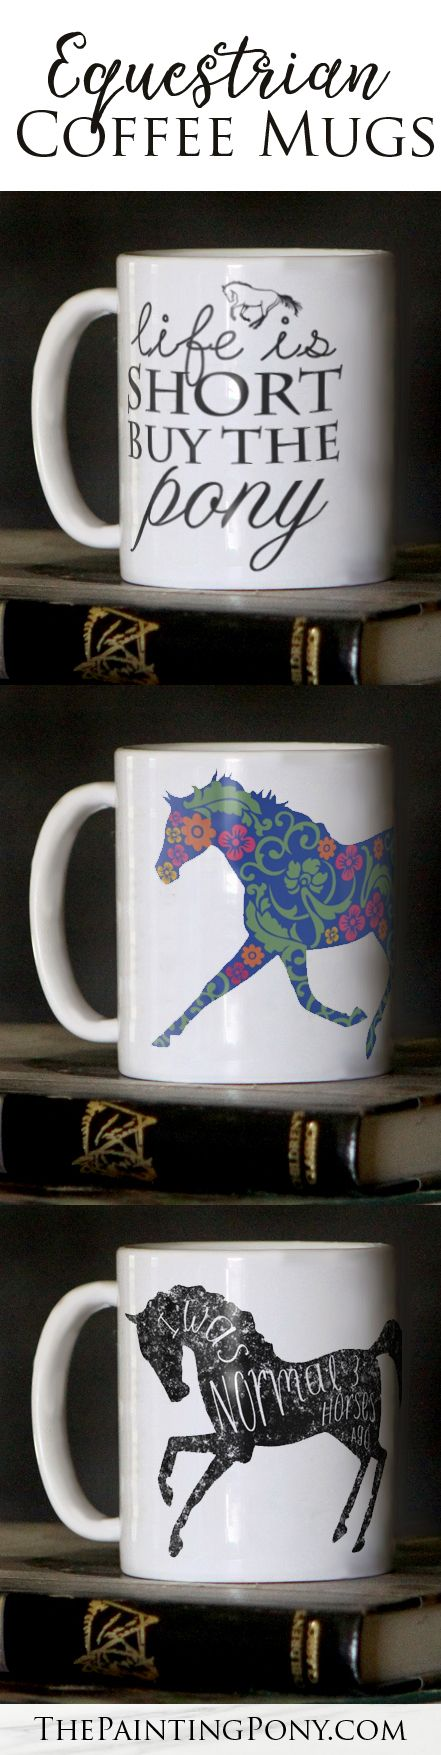 Horse lover coffee mugs for the equestrian. 11 or 15oz size ceramic mugs for the coffee and tea drinker. Perfect for anyone who loves horses and ponies and horseback riding.